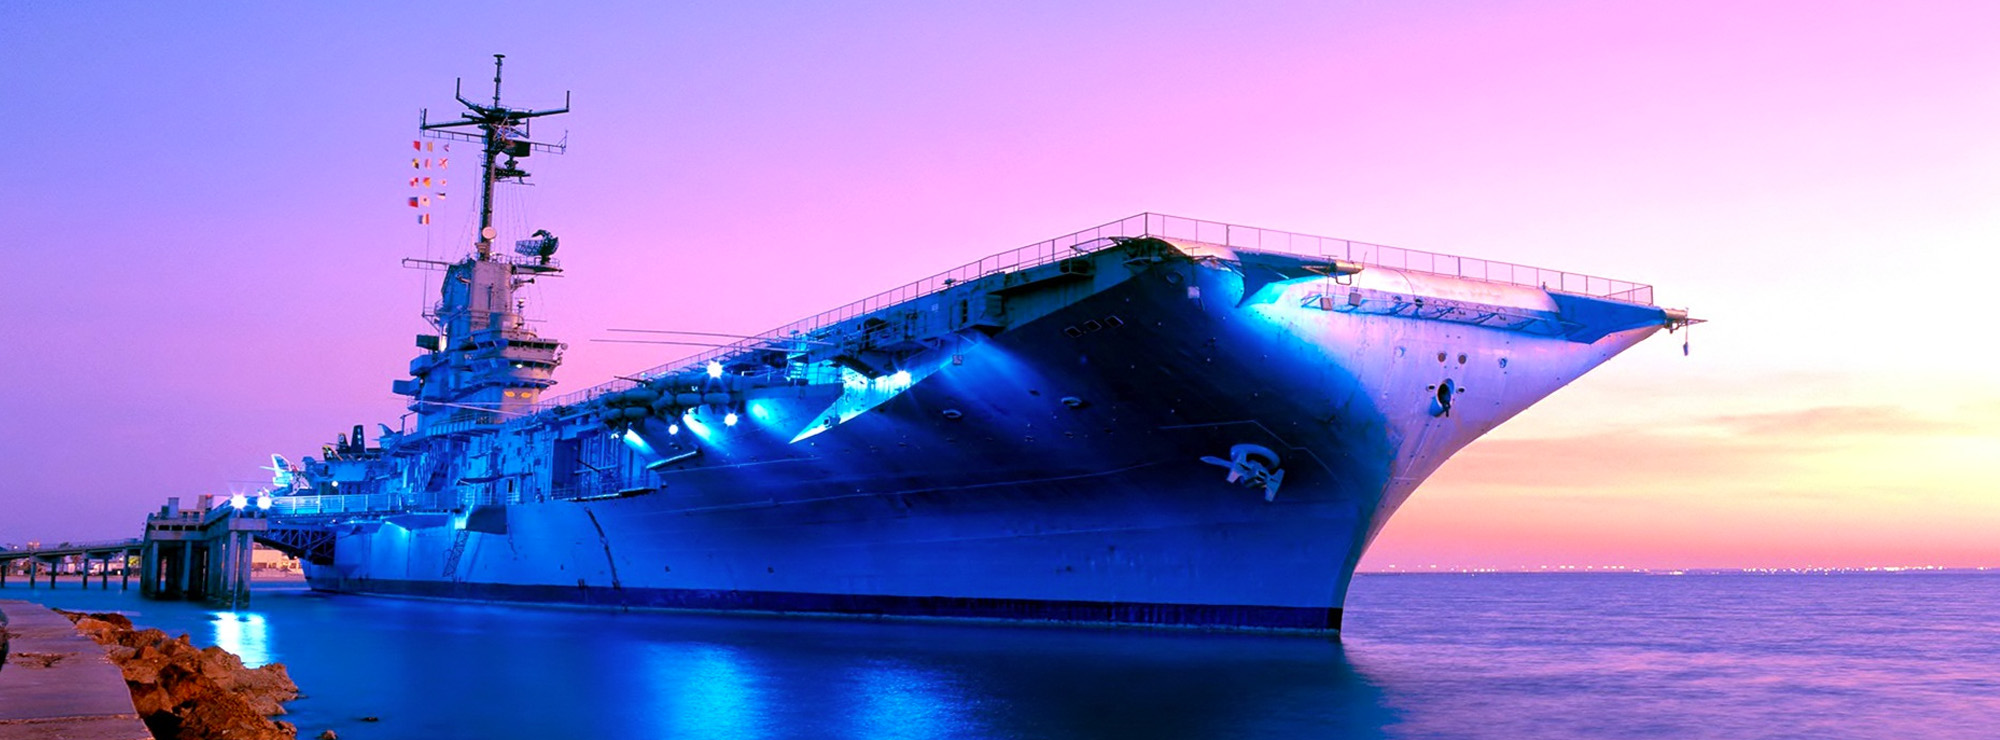 US To Turn Its Aircraft Carriers Into Floating Drone Factories Fanatical Futurist By Keynote Speaker And Matthew Griffin